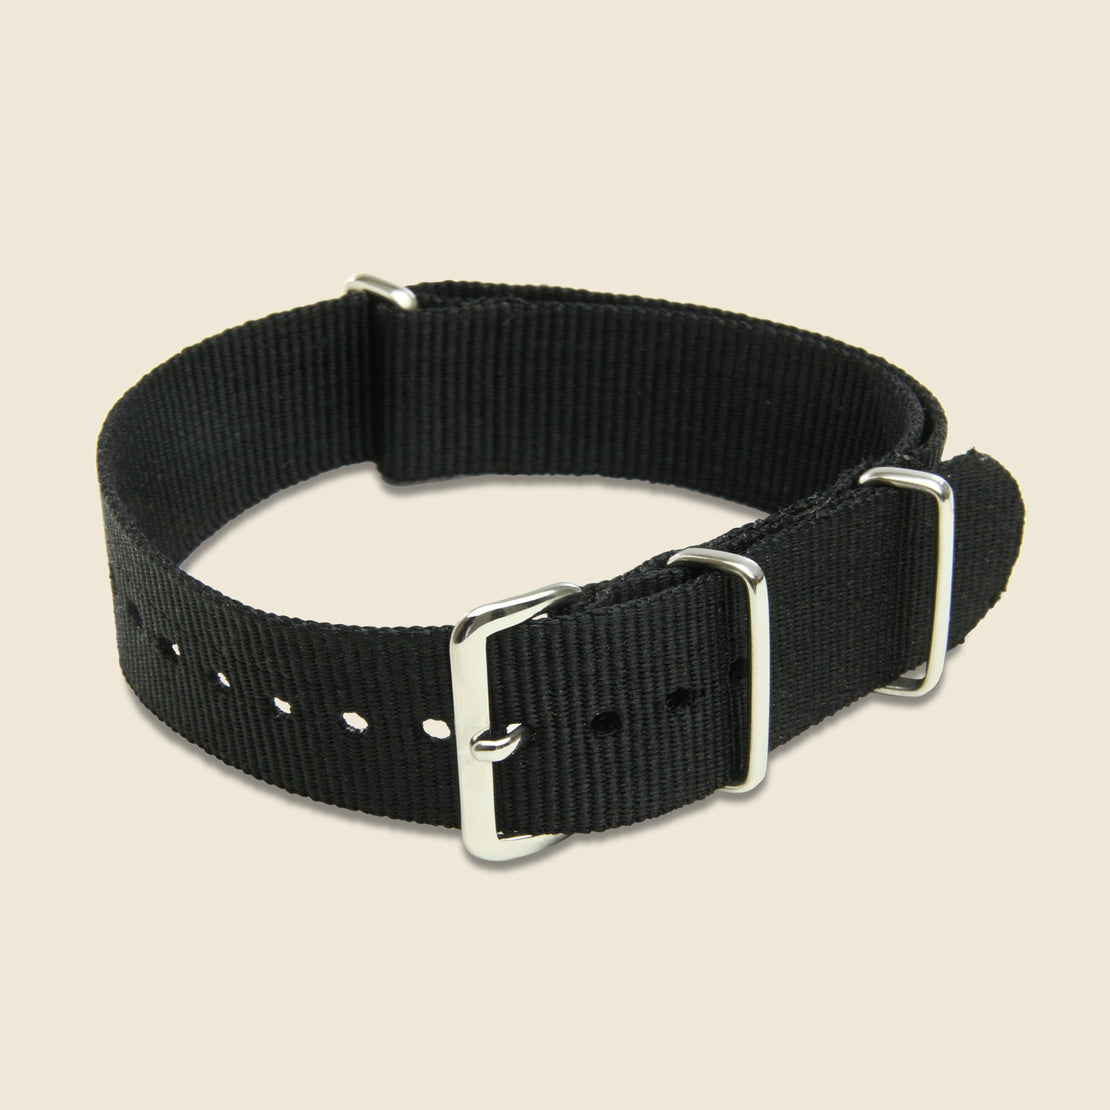 MWC 18mm Watch Band - Black